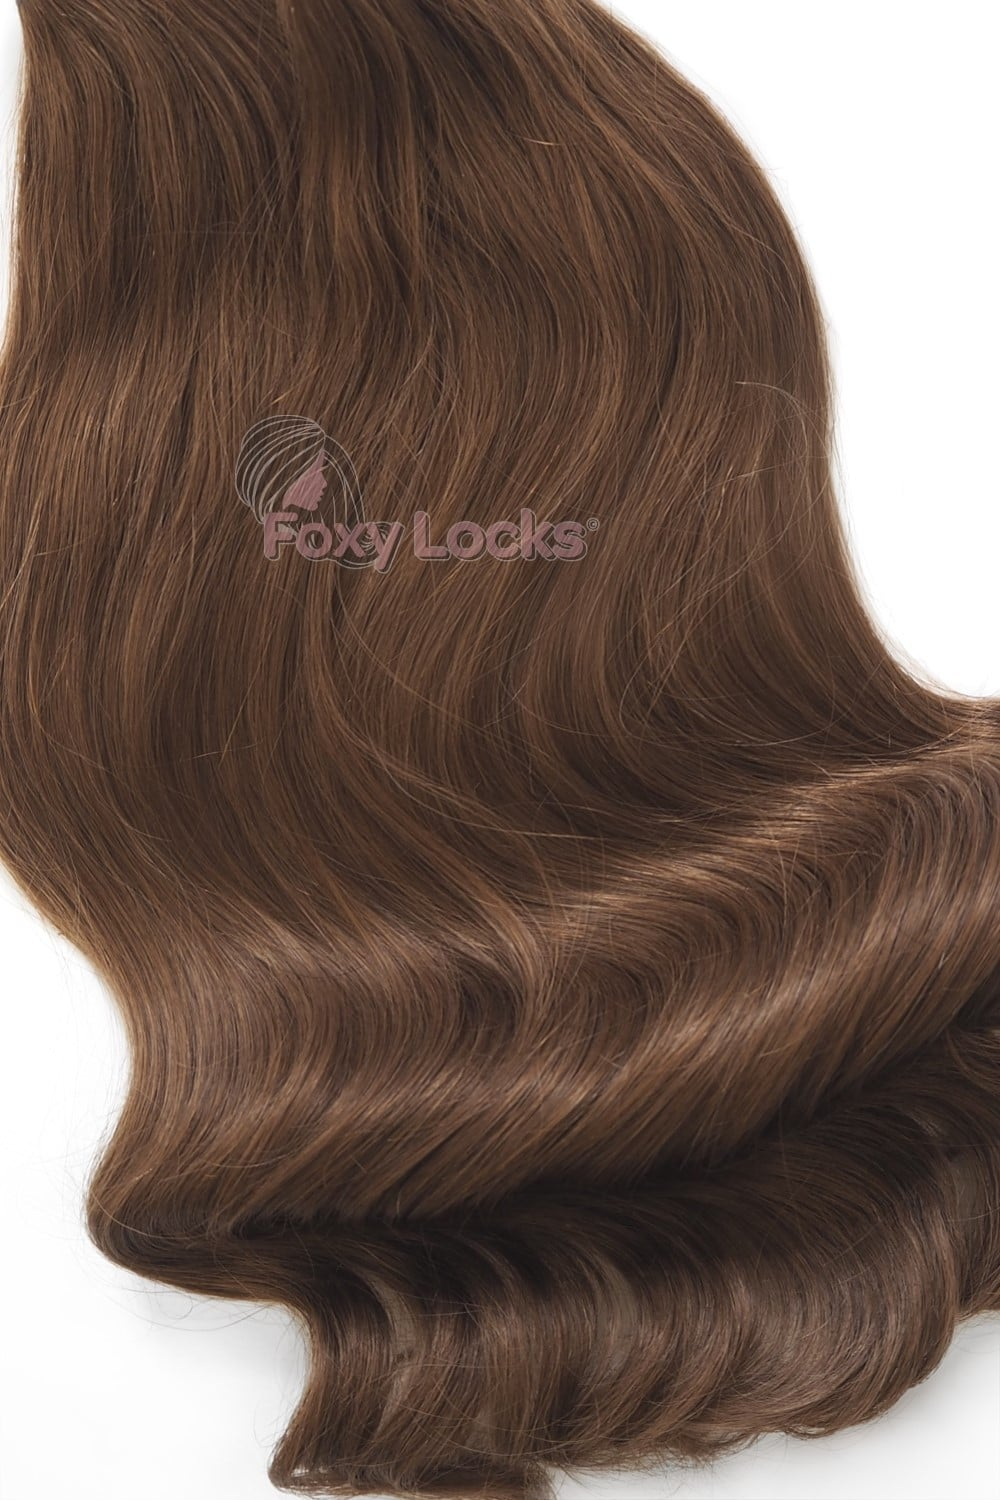 Chestnut brown 6 luxurious 24 clip in human hair extensions 280g chestnut luxurious 24 clip in human hair extensions 280g pmusecretfo Image collections